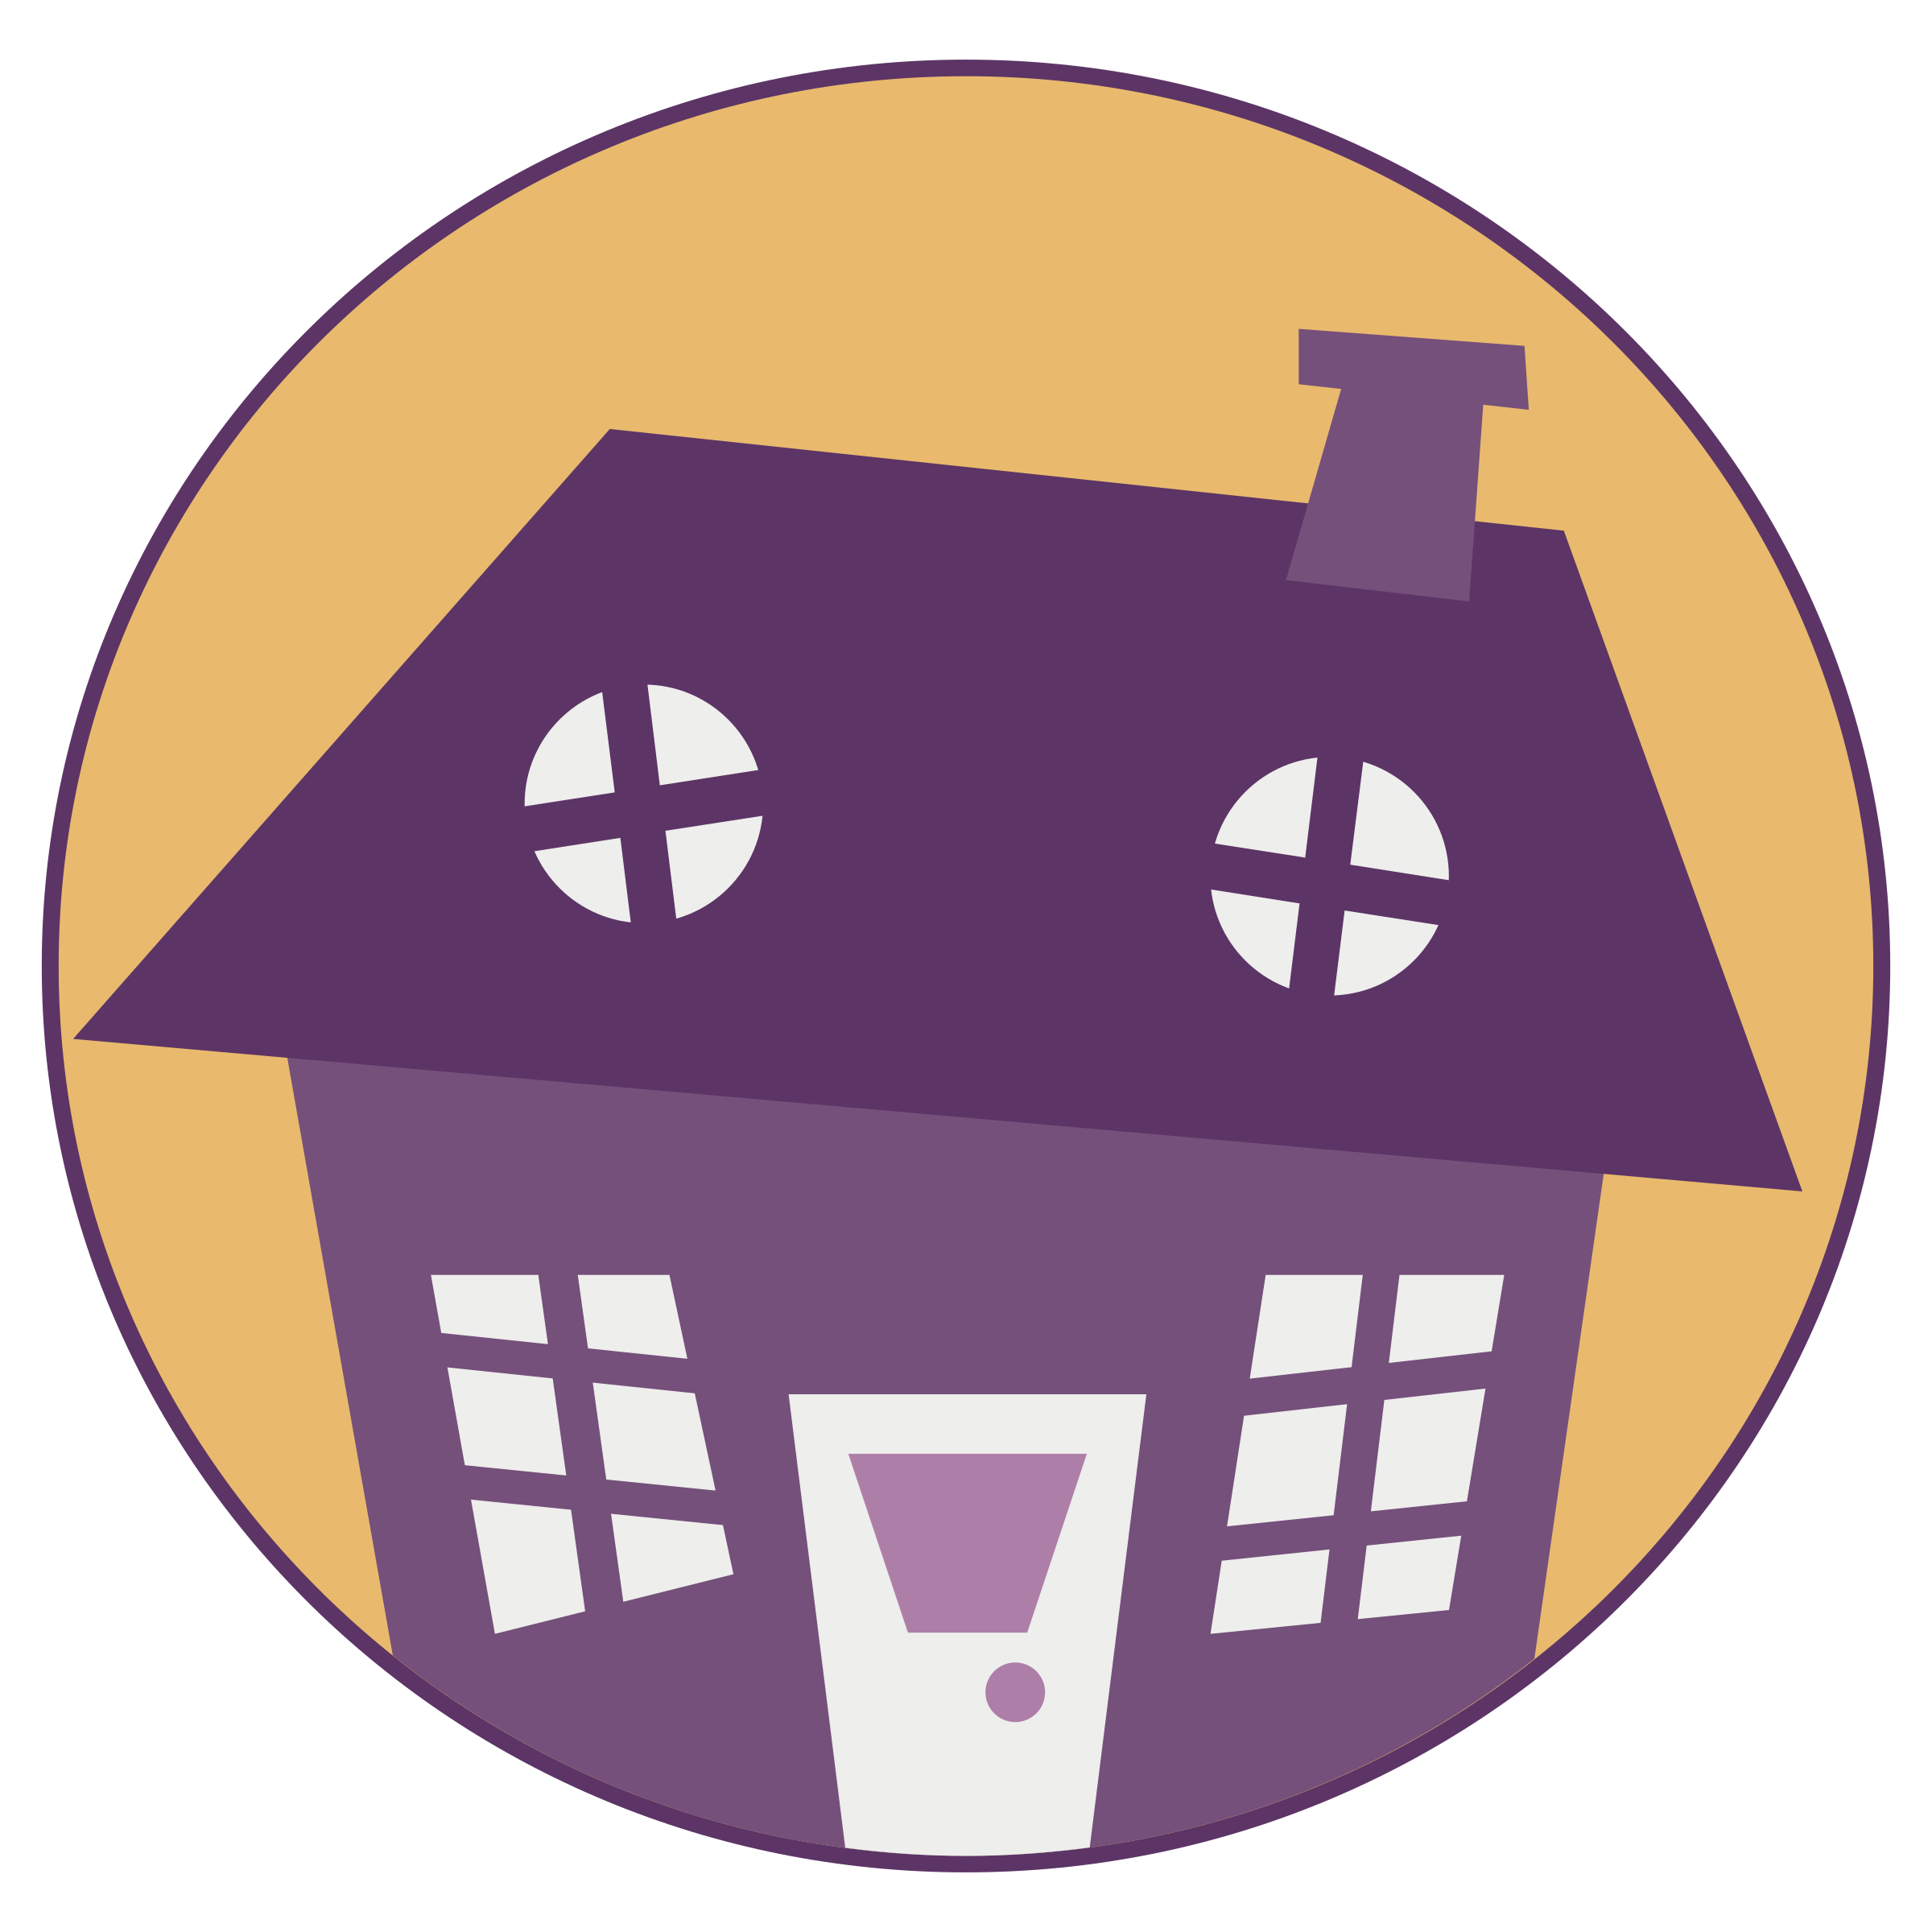 House clipart purple. Ill big image png